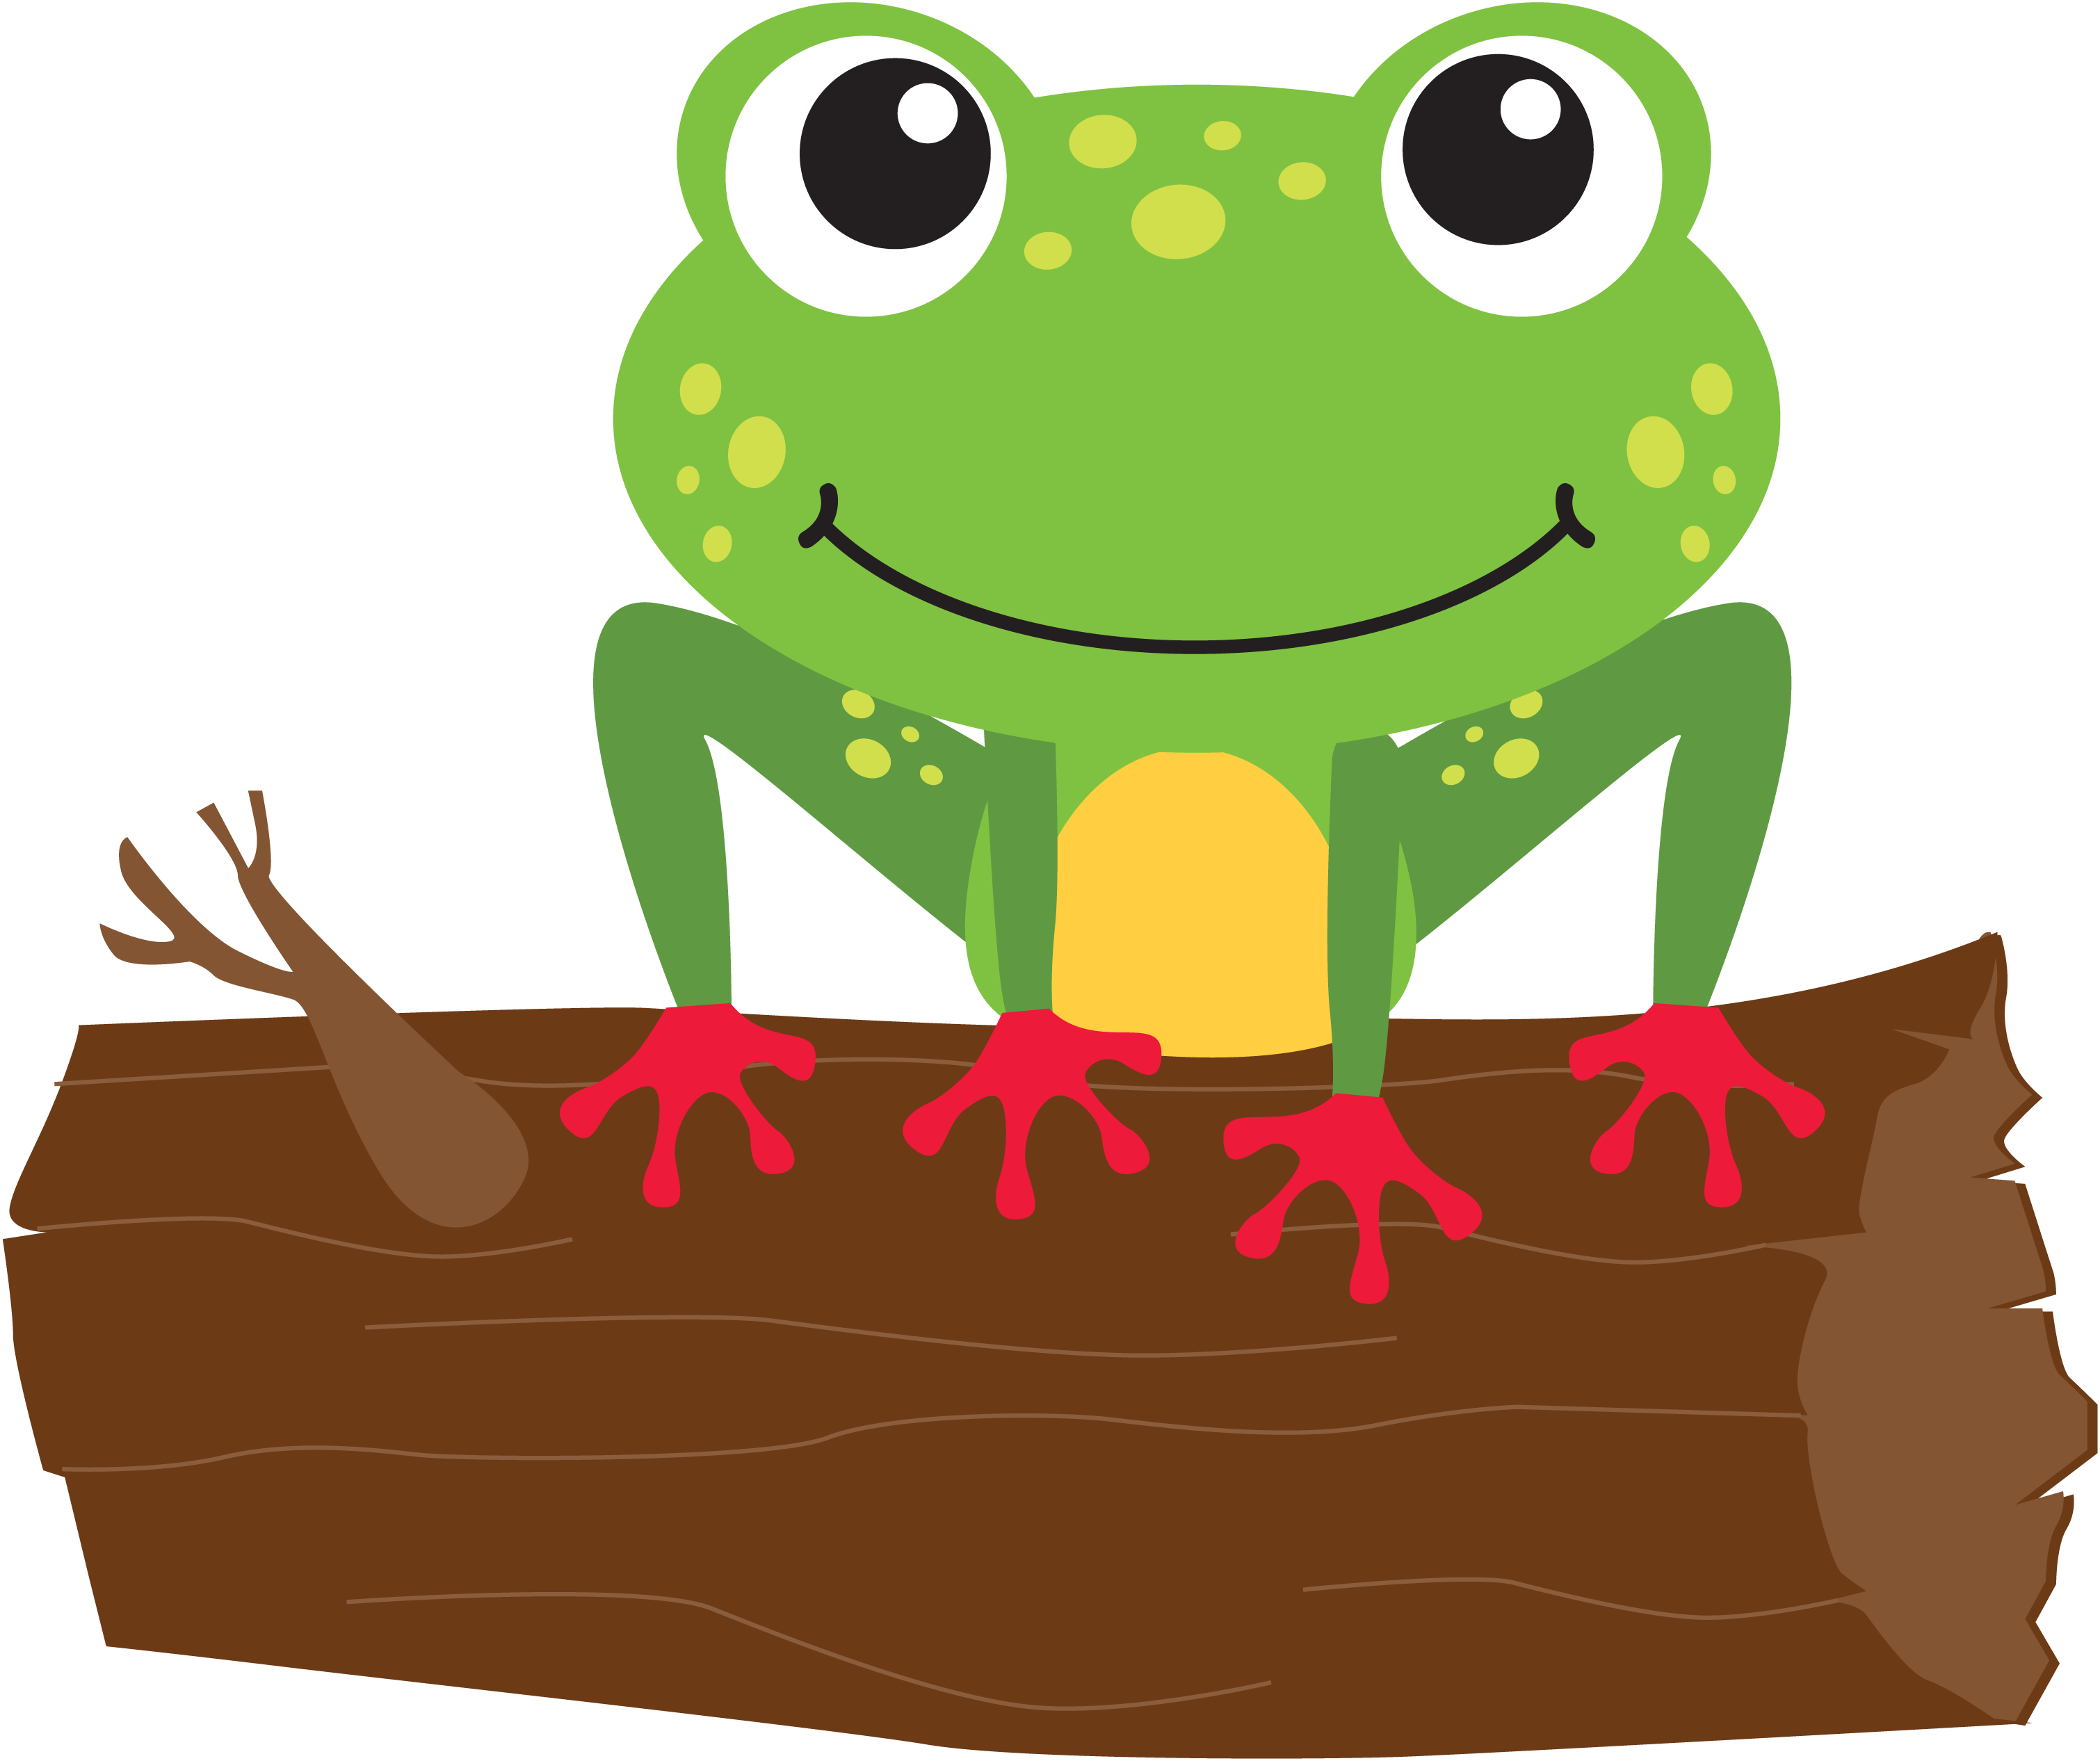 Frog clipart summer. Announcements archive leap into